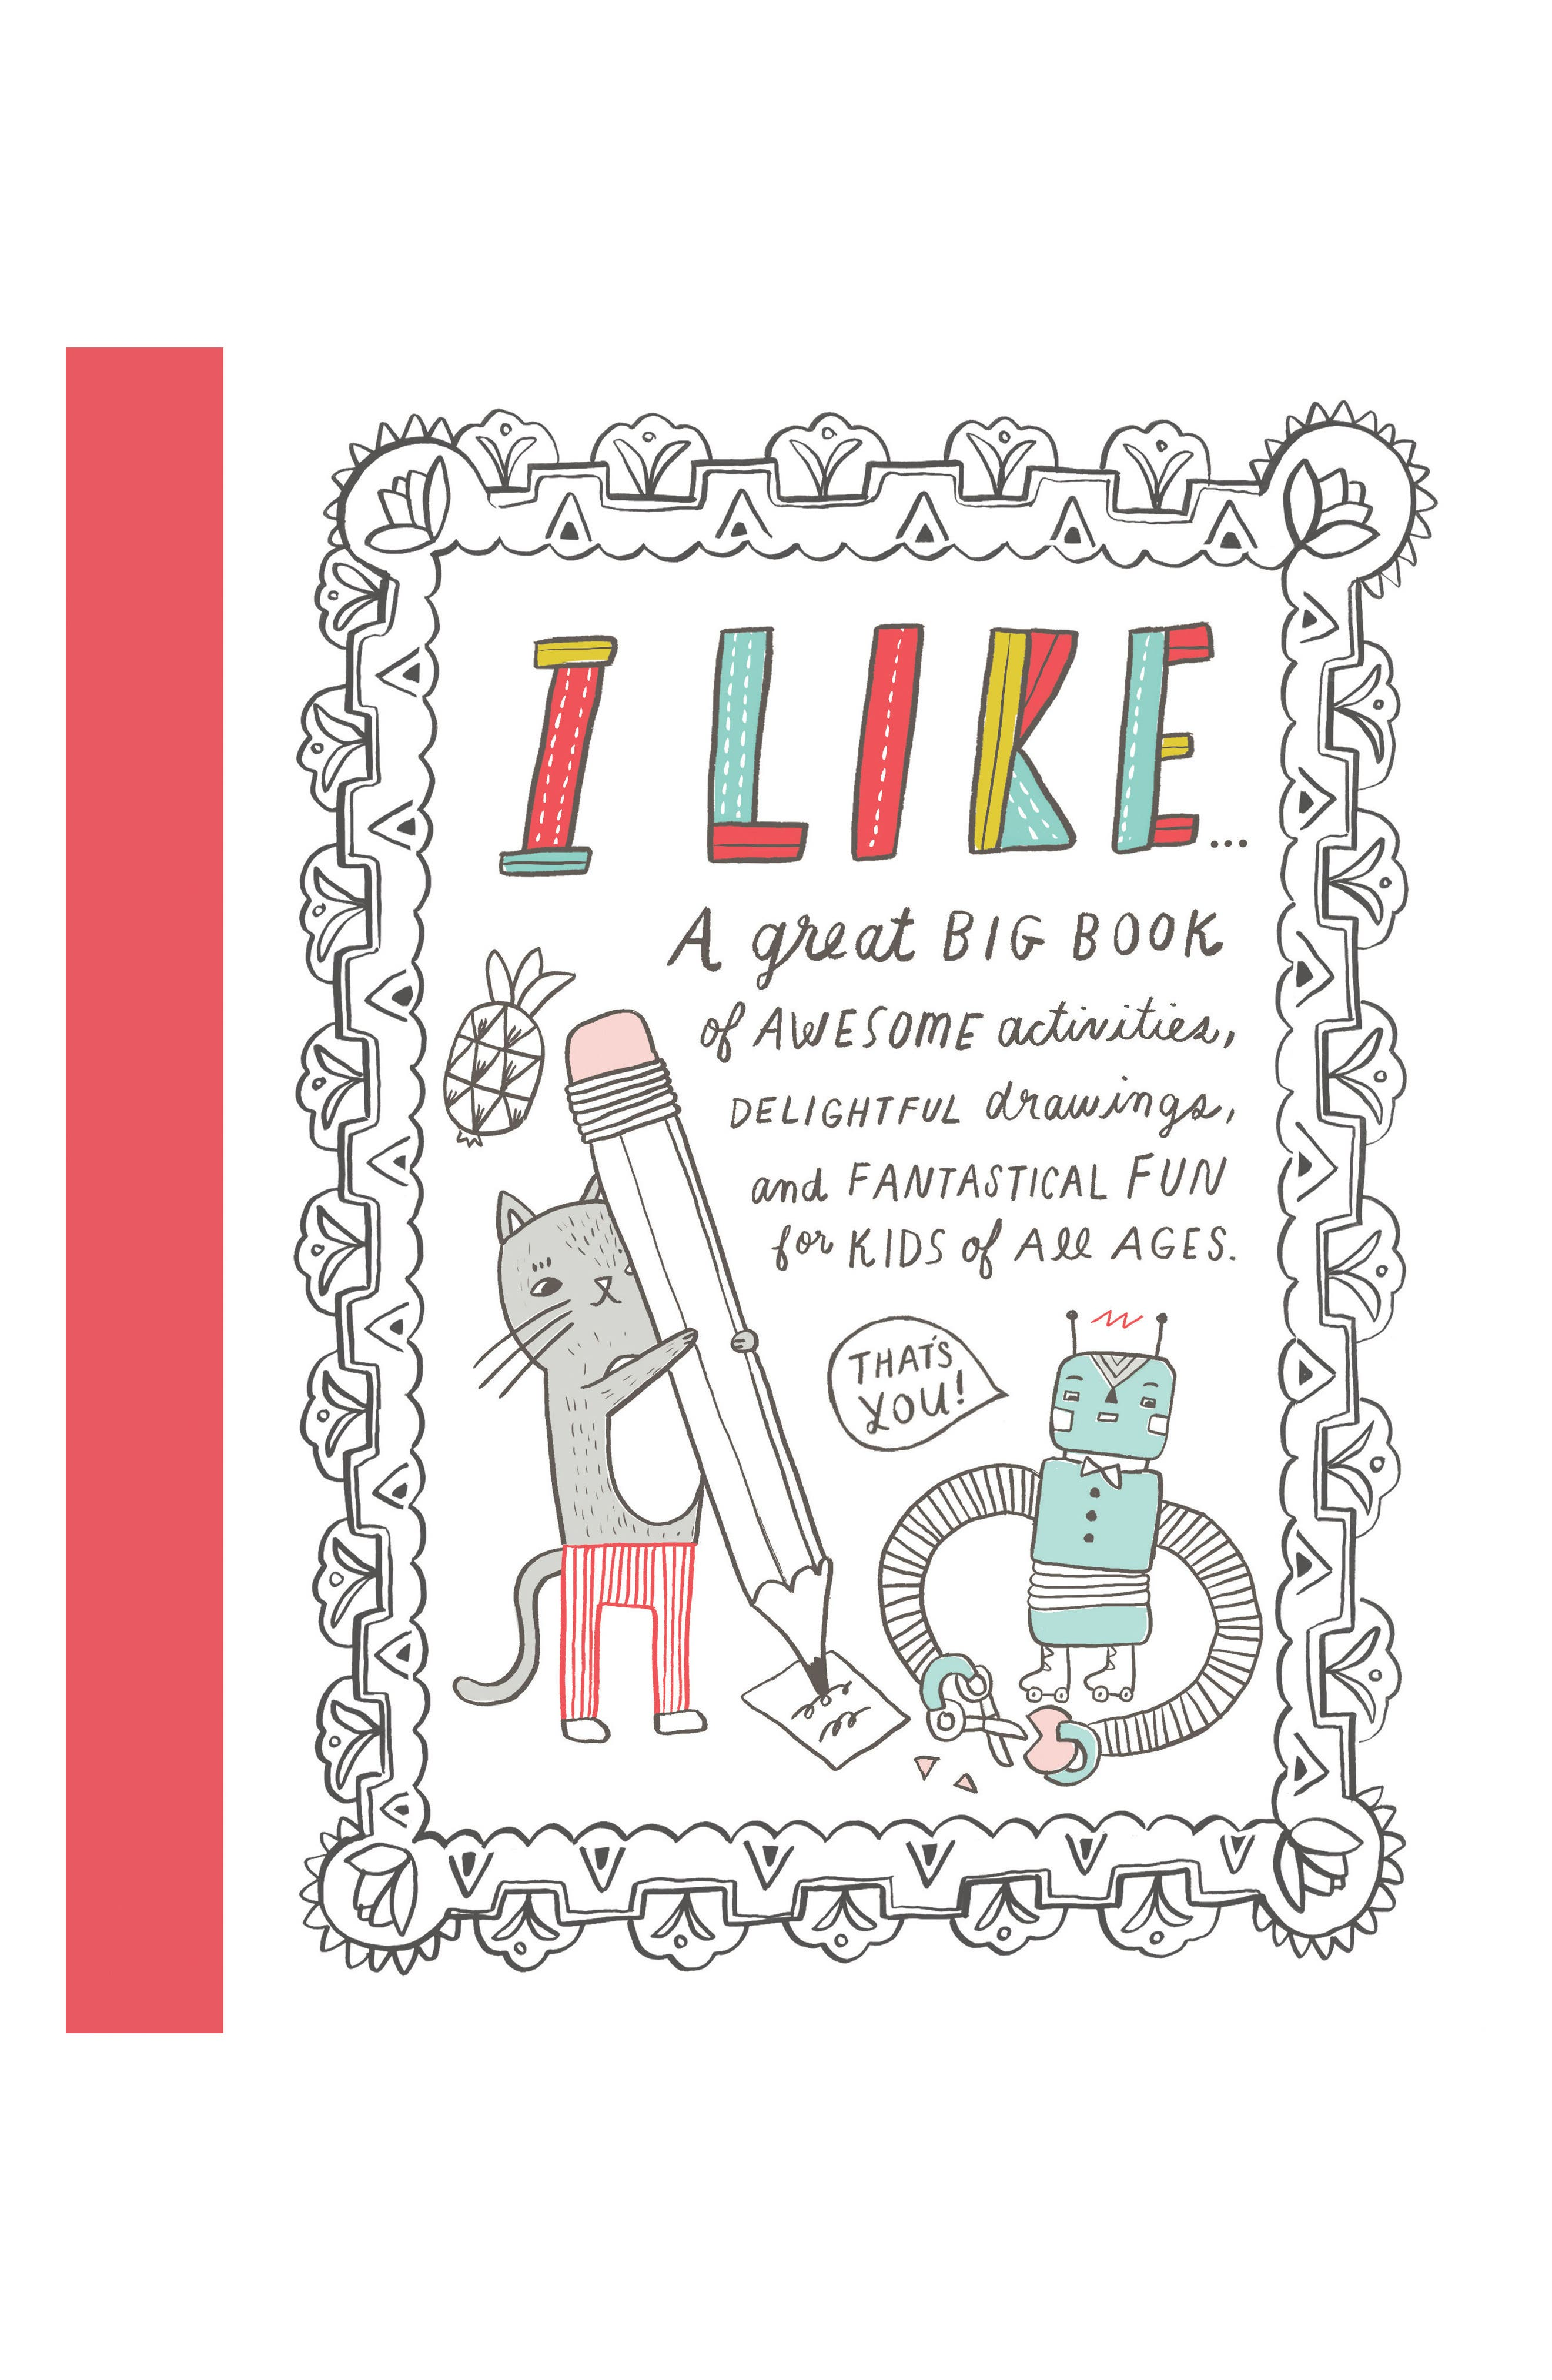 'I Like...A Great Big Book of Awesome Activities, Delightful Drawings, and Fantastical Fun for Kids of All Ages (That's You!)' Activity Book (Kids)